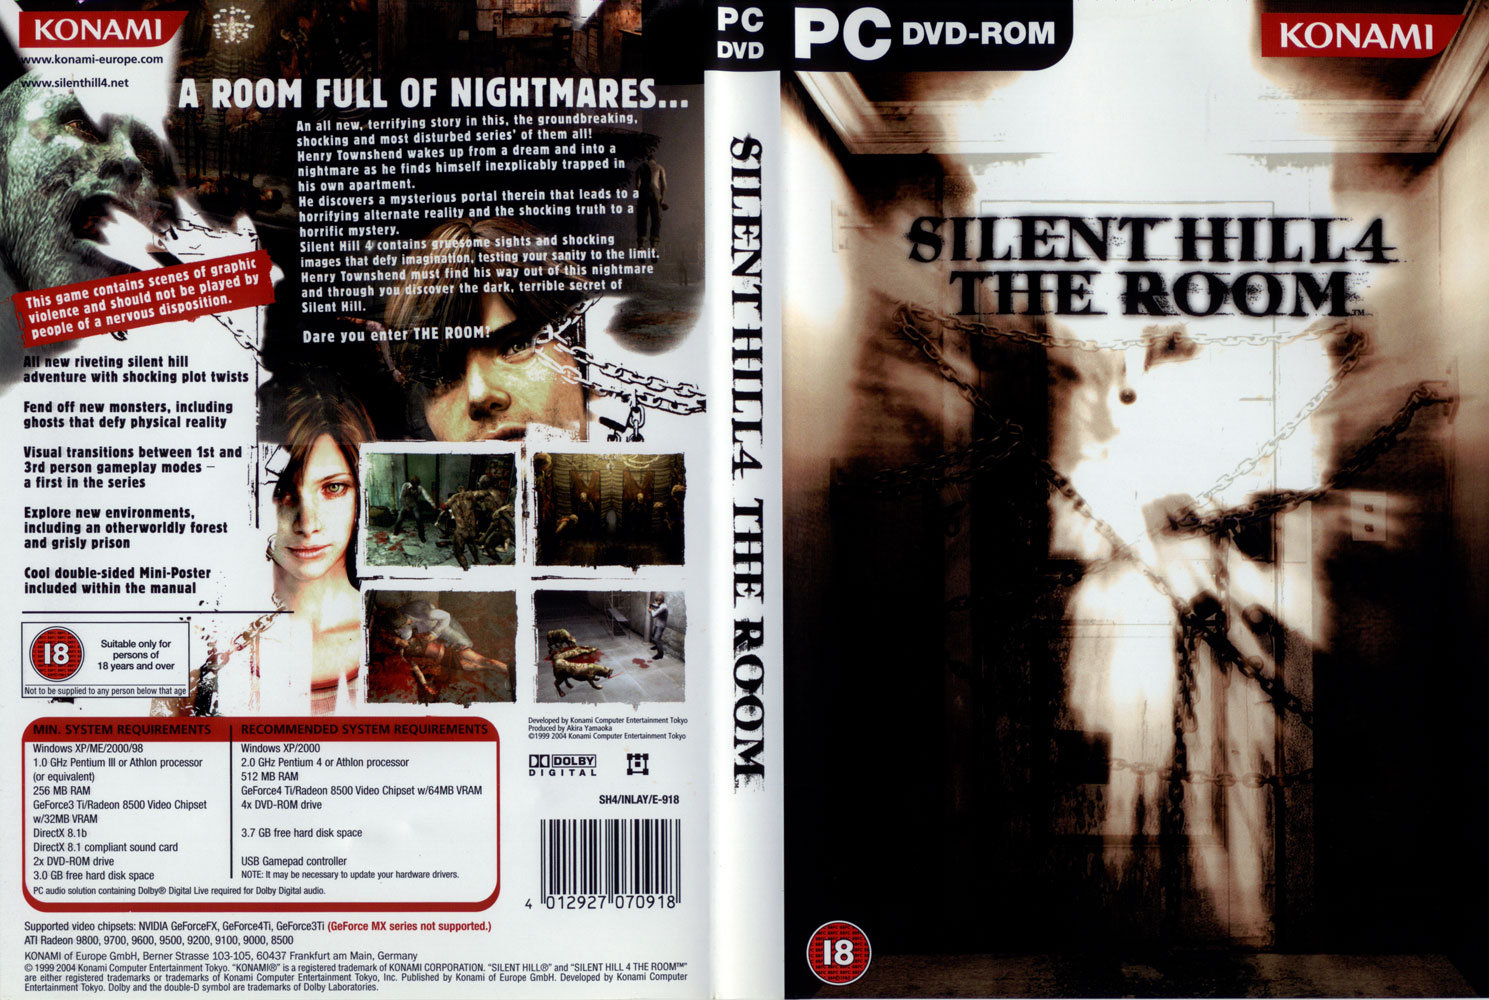 Silent Hill 4 The Room ~ DvD High